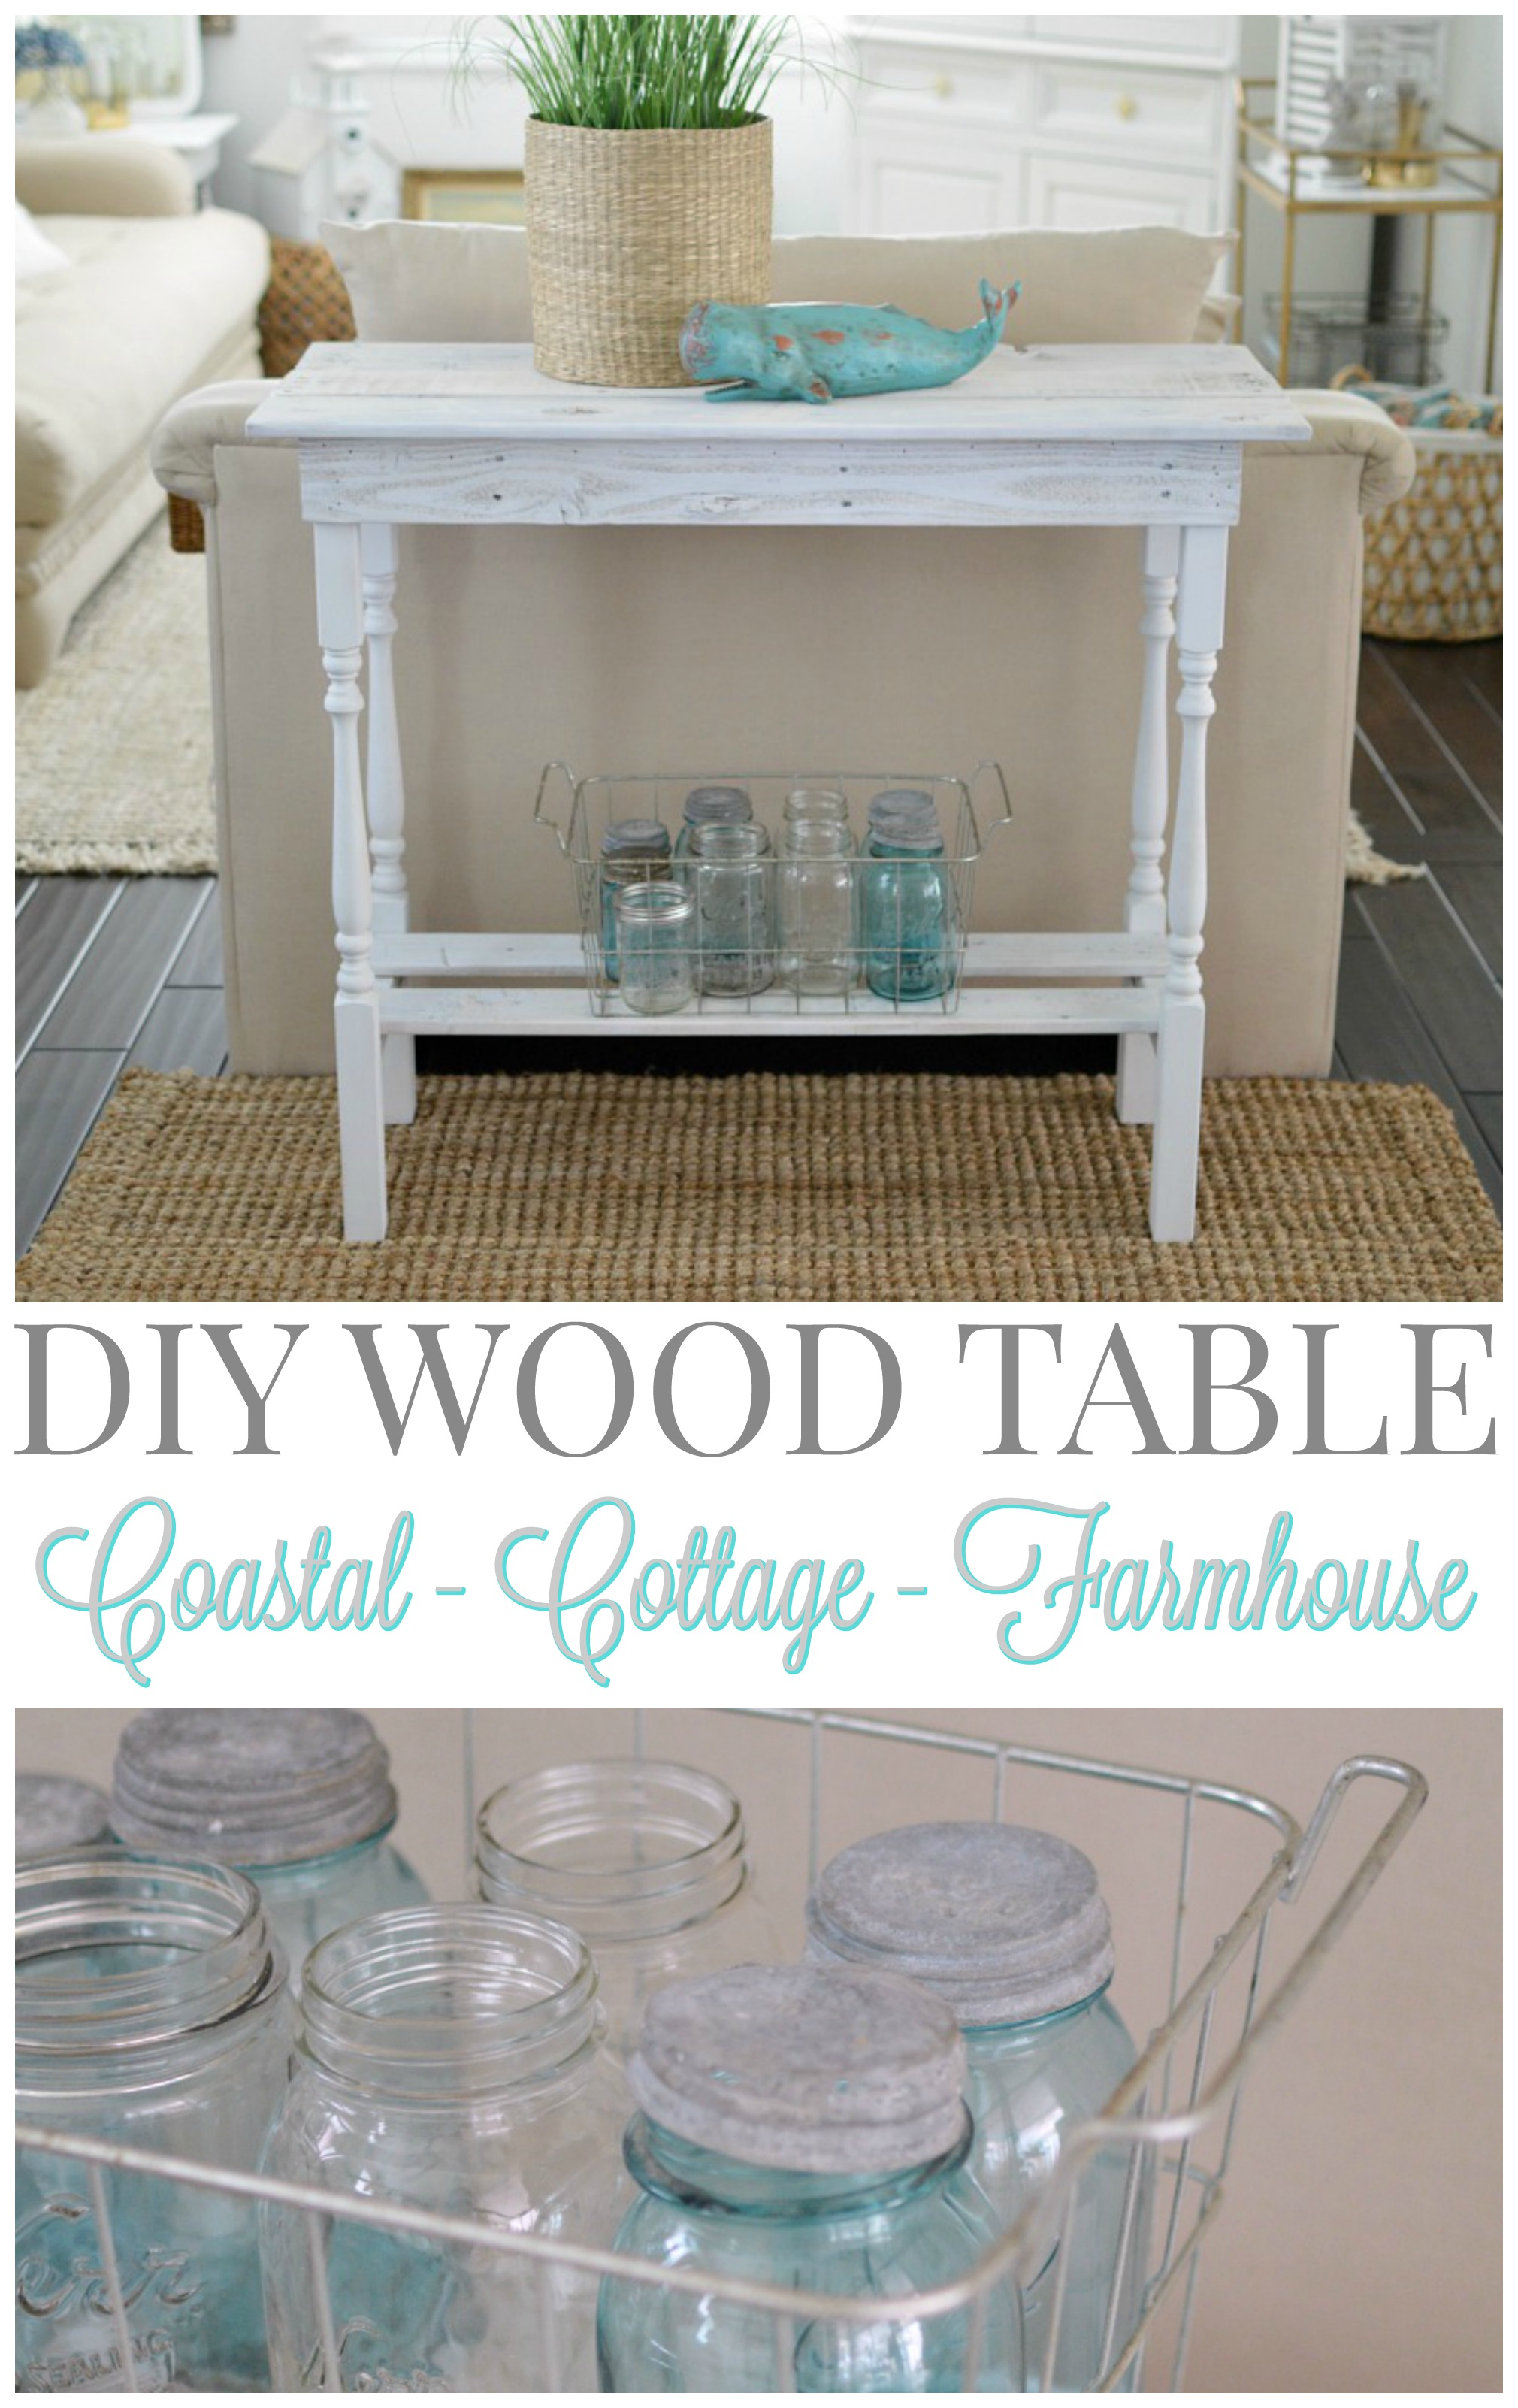 DIY coastal cottage farmhouse wood table - foxhollowcottage.com Fox Hollow Cottage by Shannon Fox